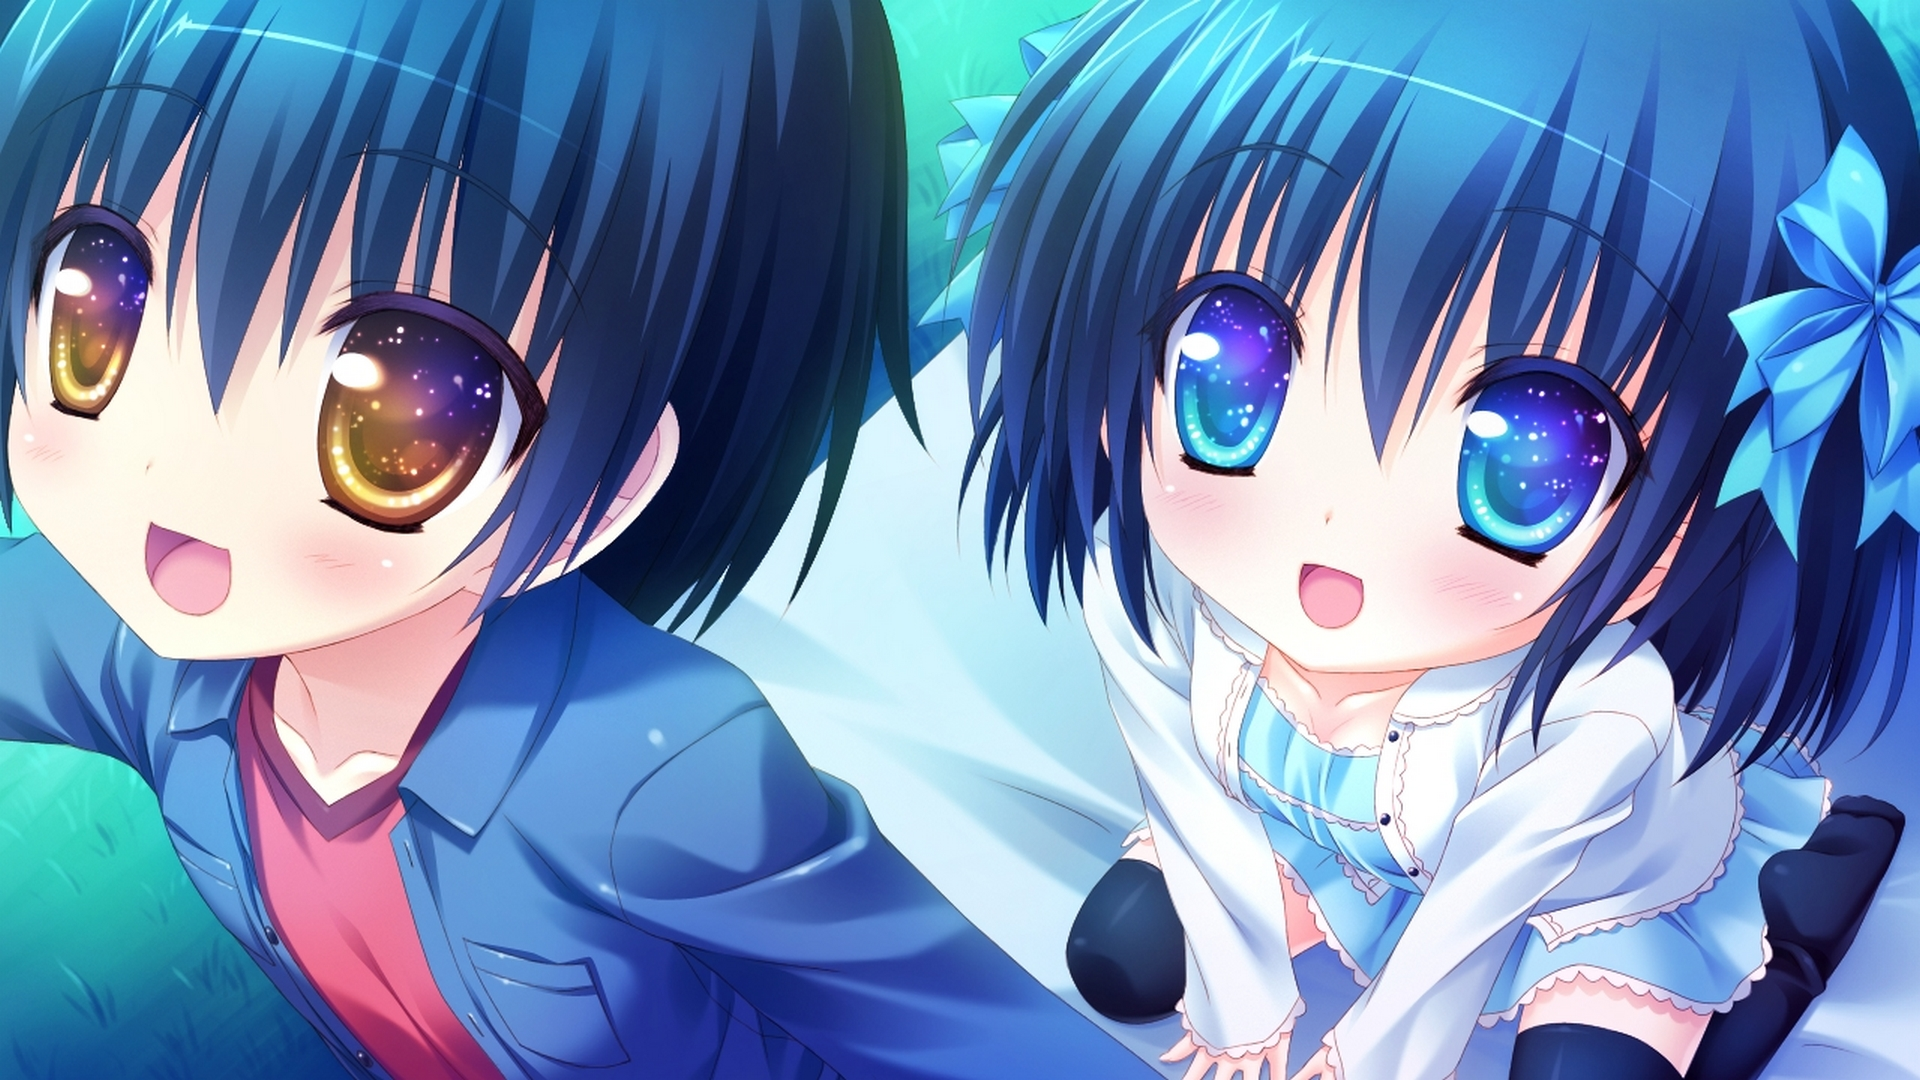 Animated Girly Wallpapers Anime Love Image 11